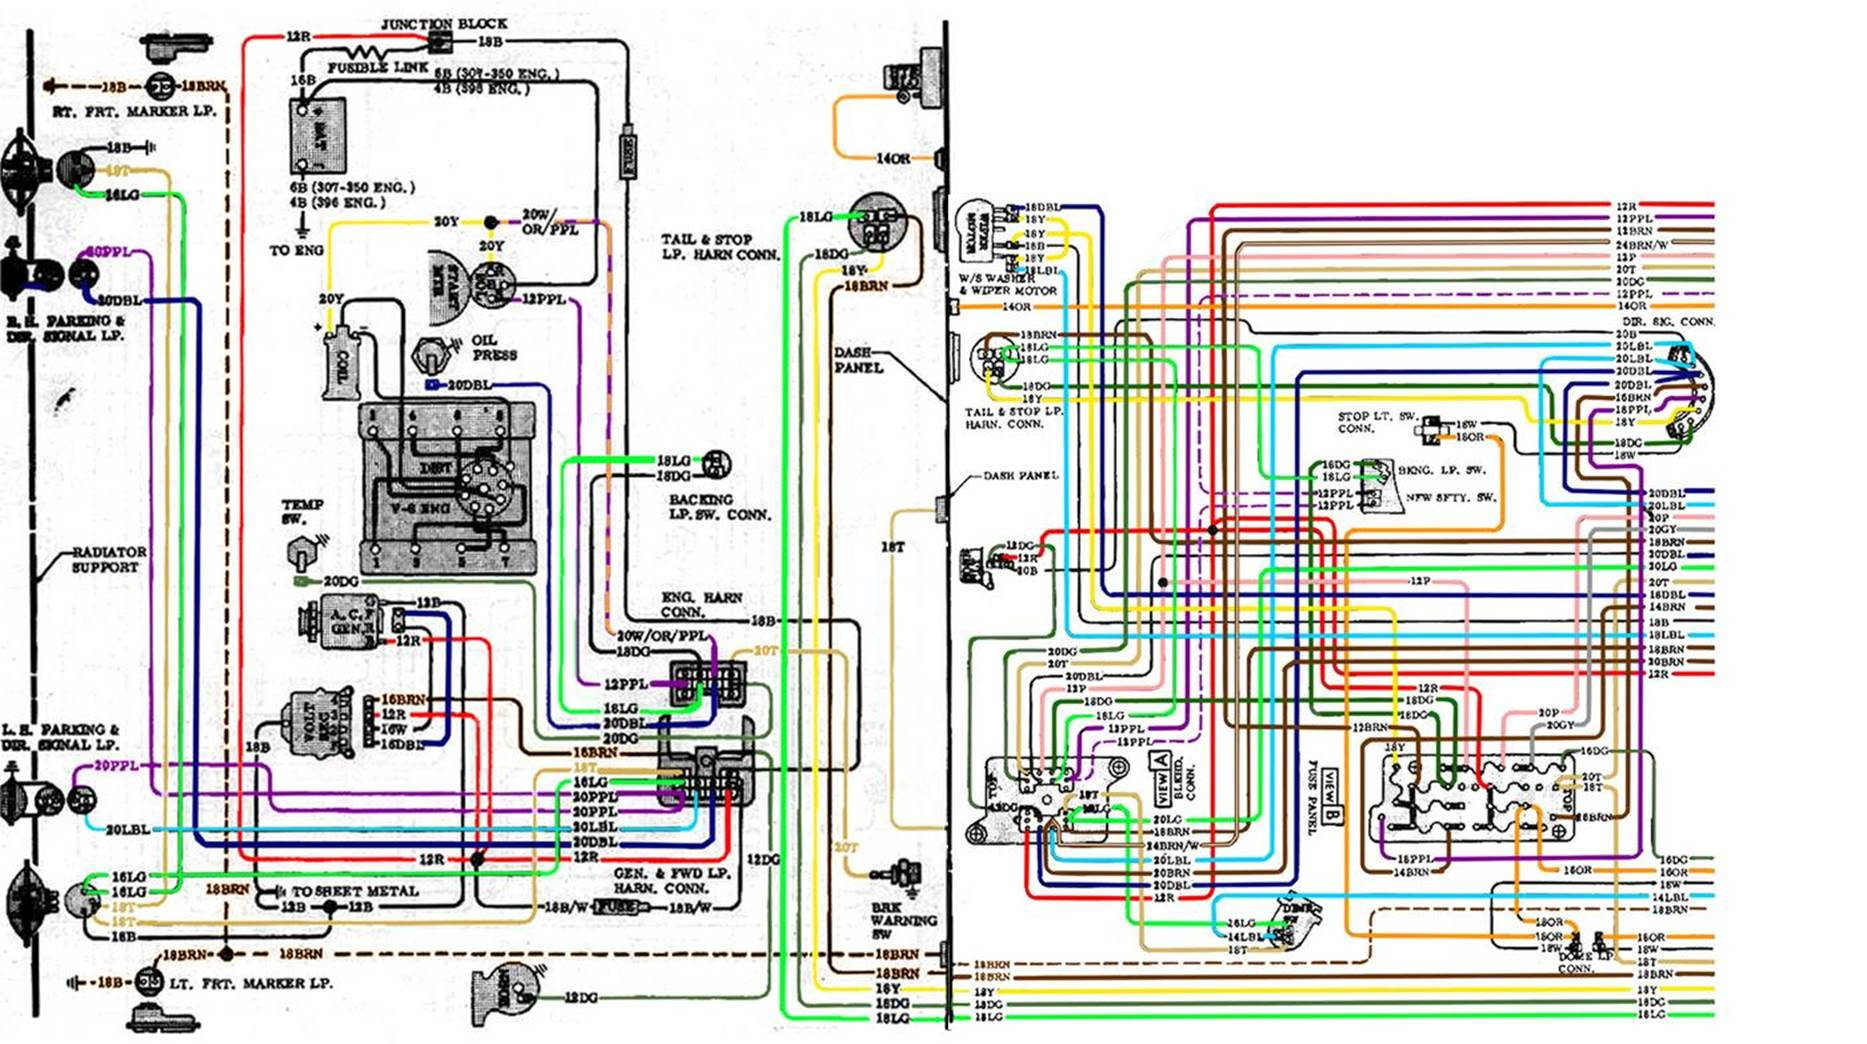 image002 1972 chevelle wiring diagram 1970 chevelle ss dash wiring diagram 1973 chevy nova wiring harness at mifinder.co